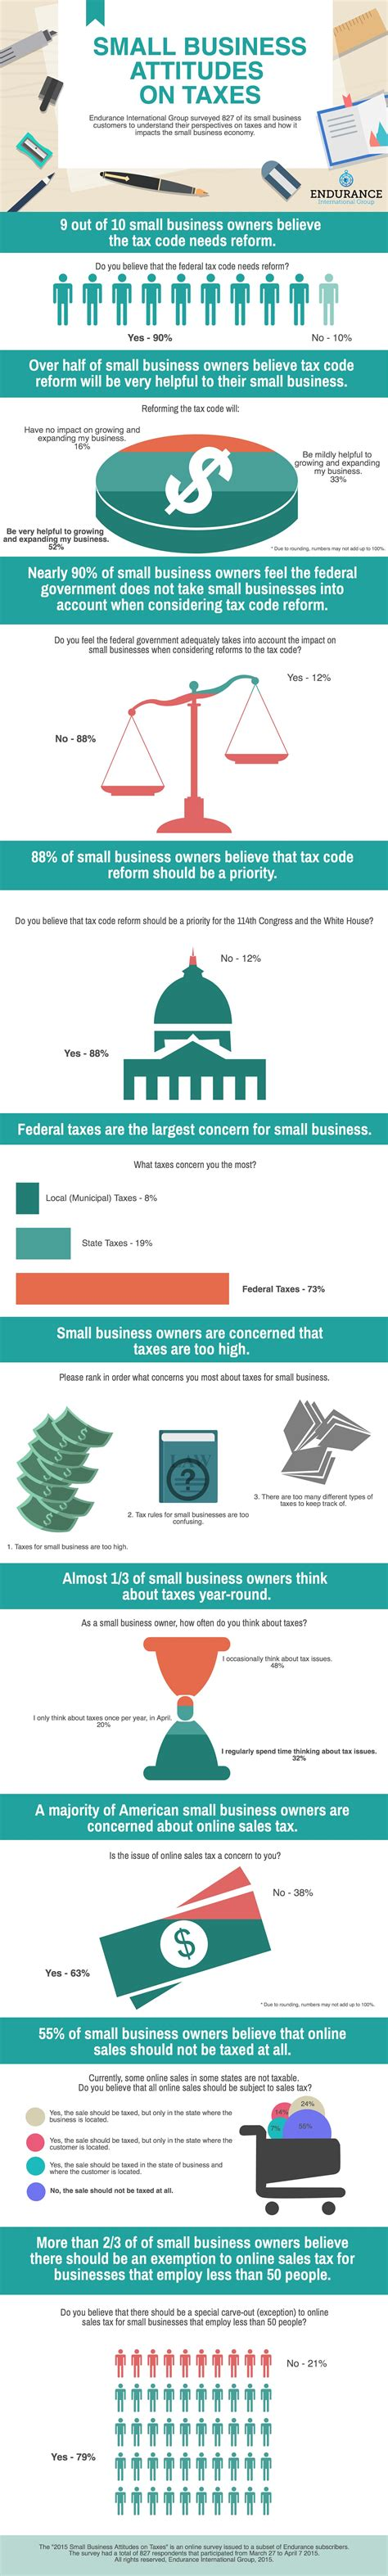 Small Home Business Tax Information Infographic Small Business Attitudes On Taxes Hostgator